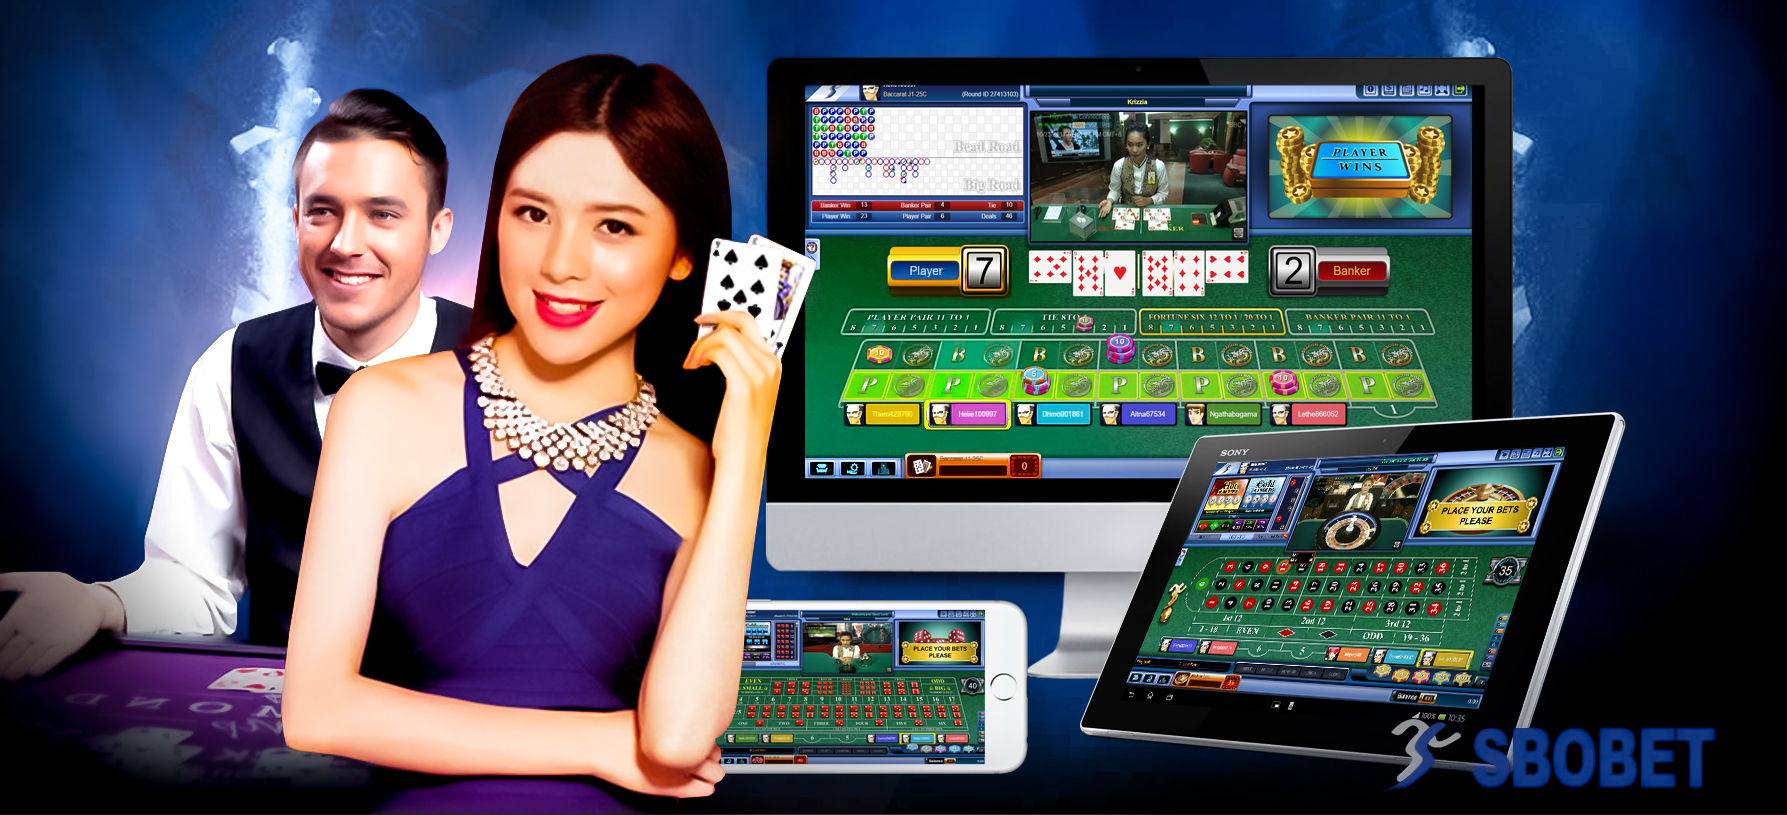 On-Line Casino Dressing Code - Index